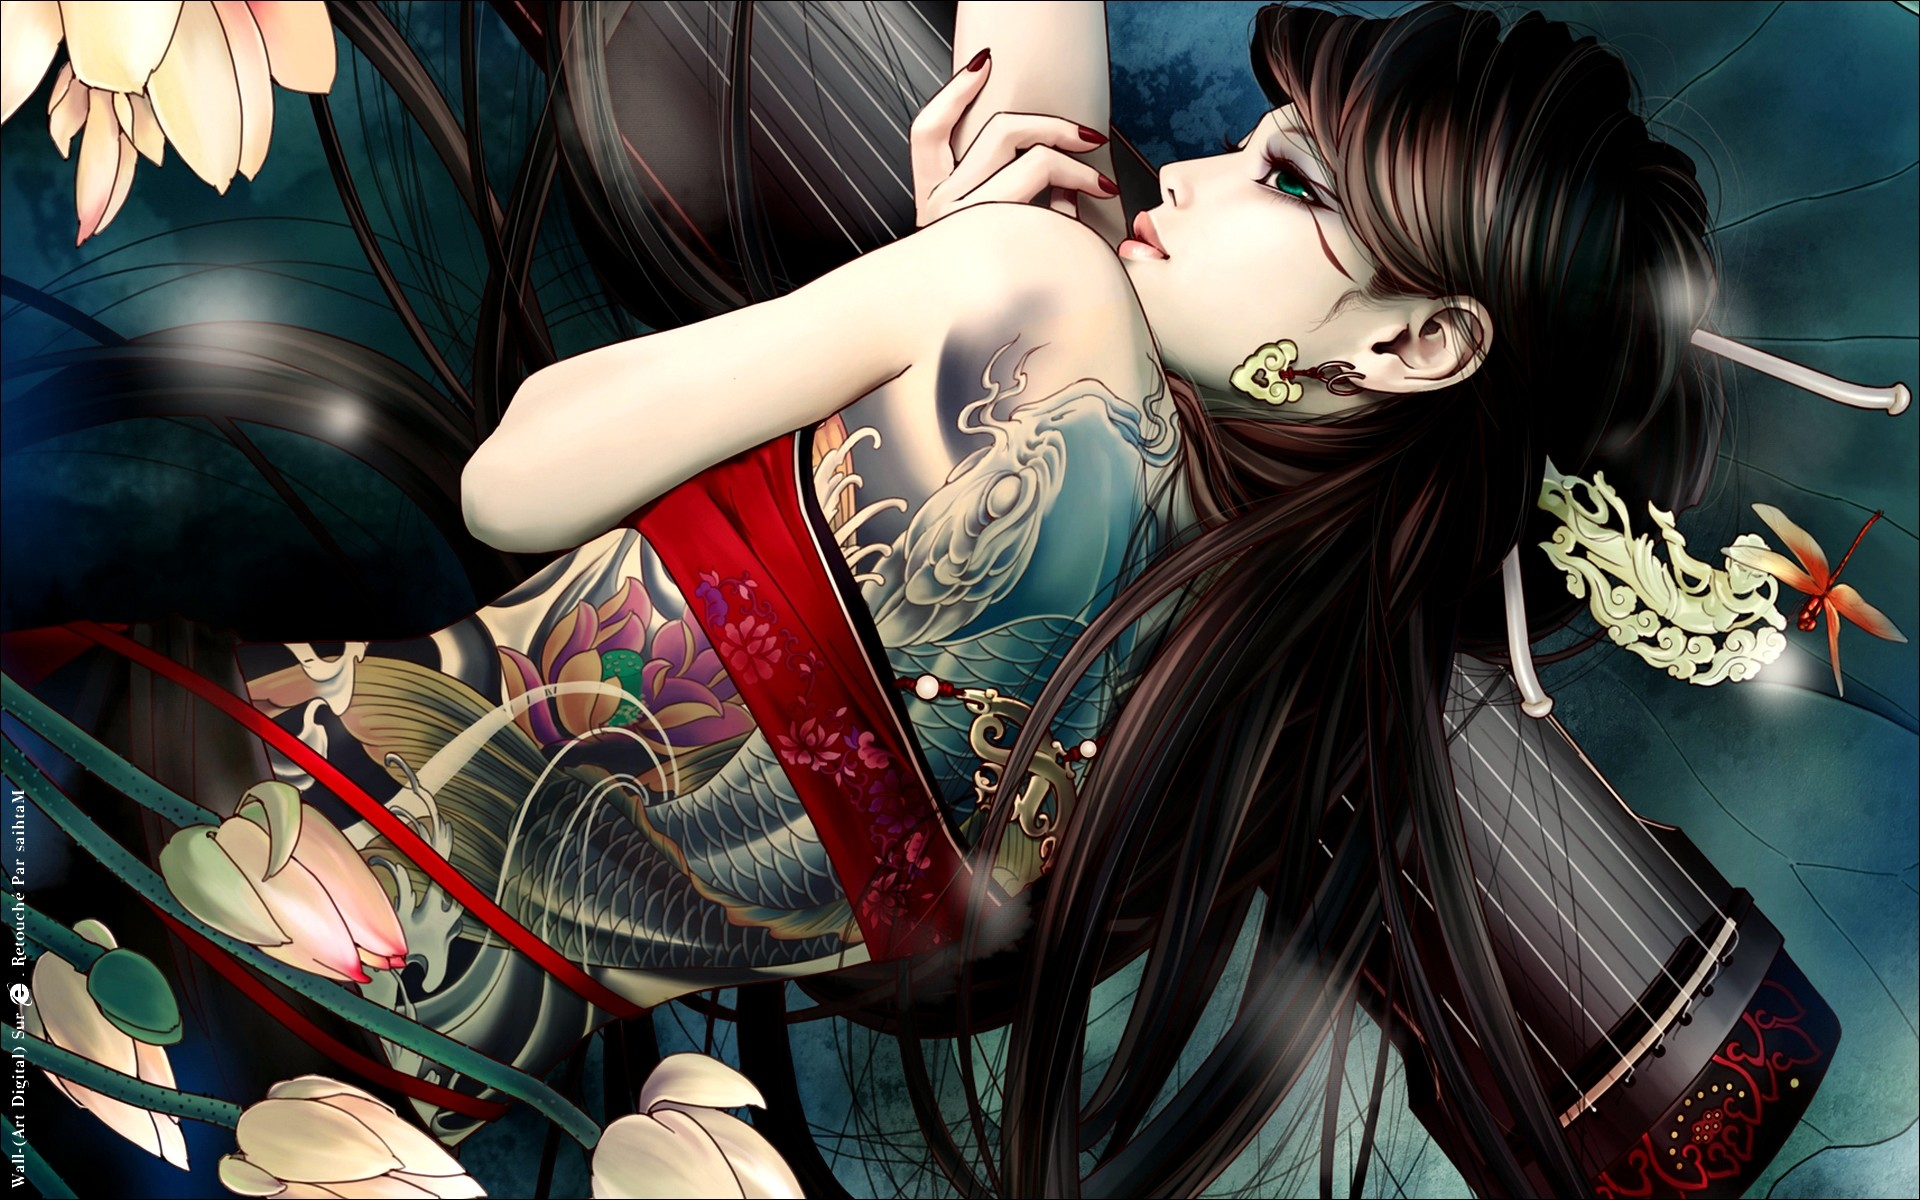 Download Anime Cool Girl Wallpaper x Full HD Wallpapers